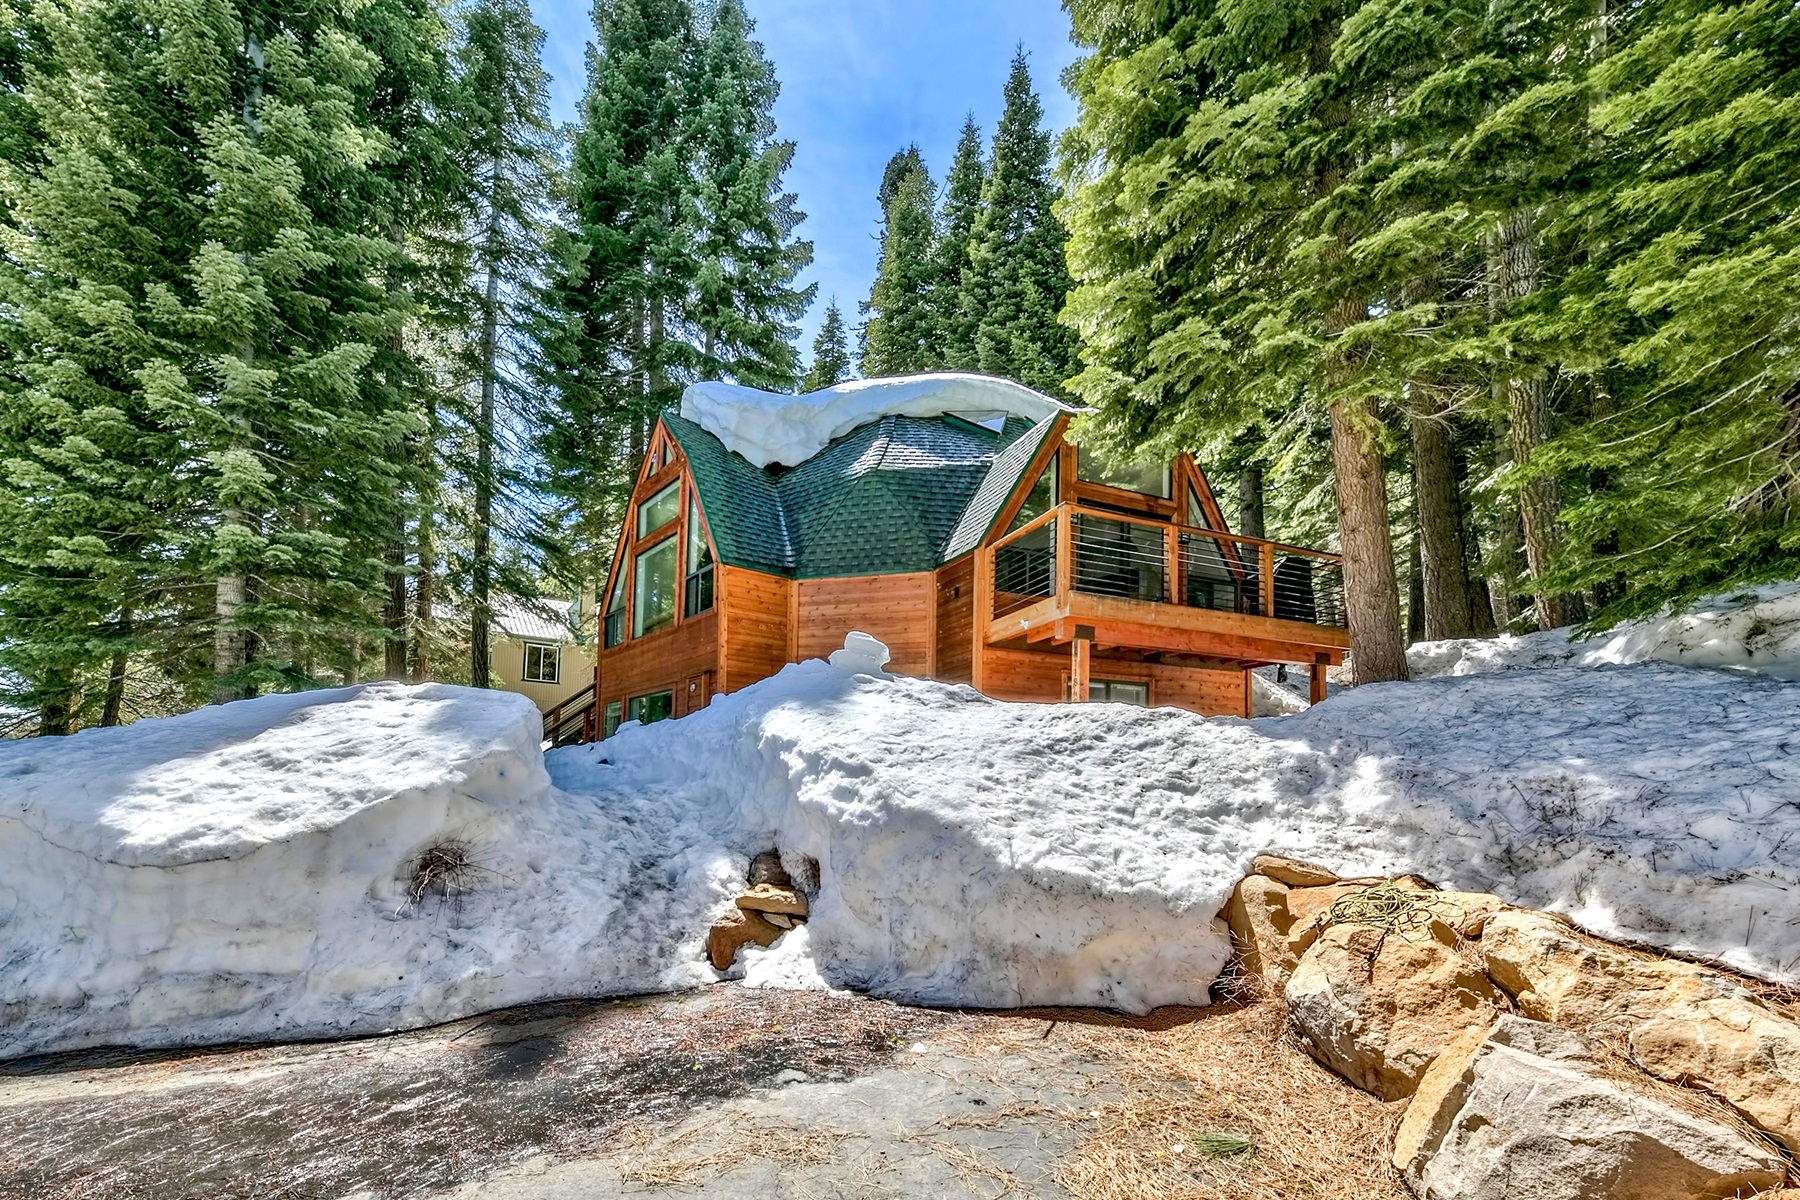 Single Family Home for Active at 11842 Chamonix Rd, Truckee, CA 96161 11842 Chamonix Rd Truckee, California 96161 United States